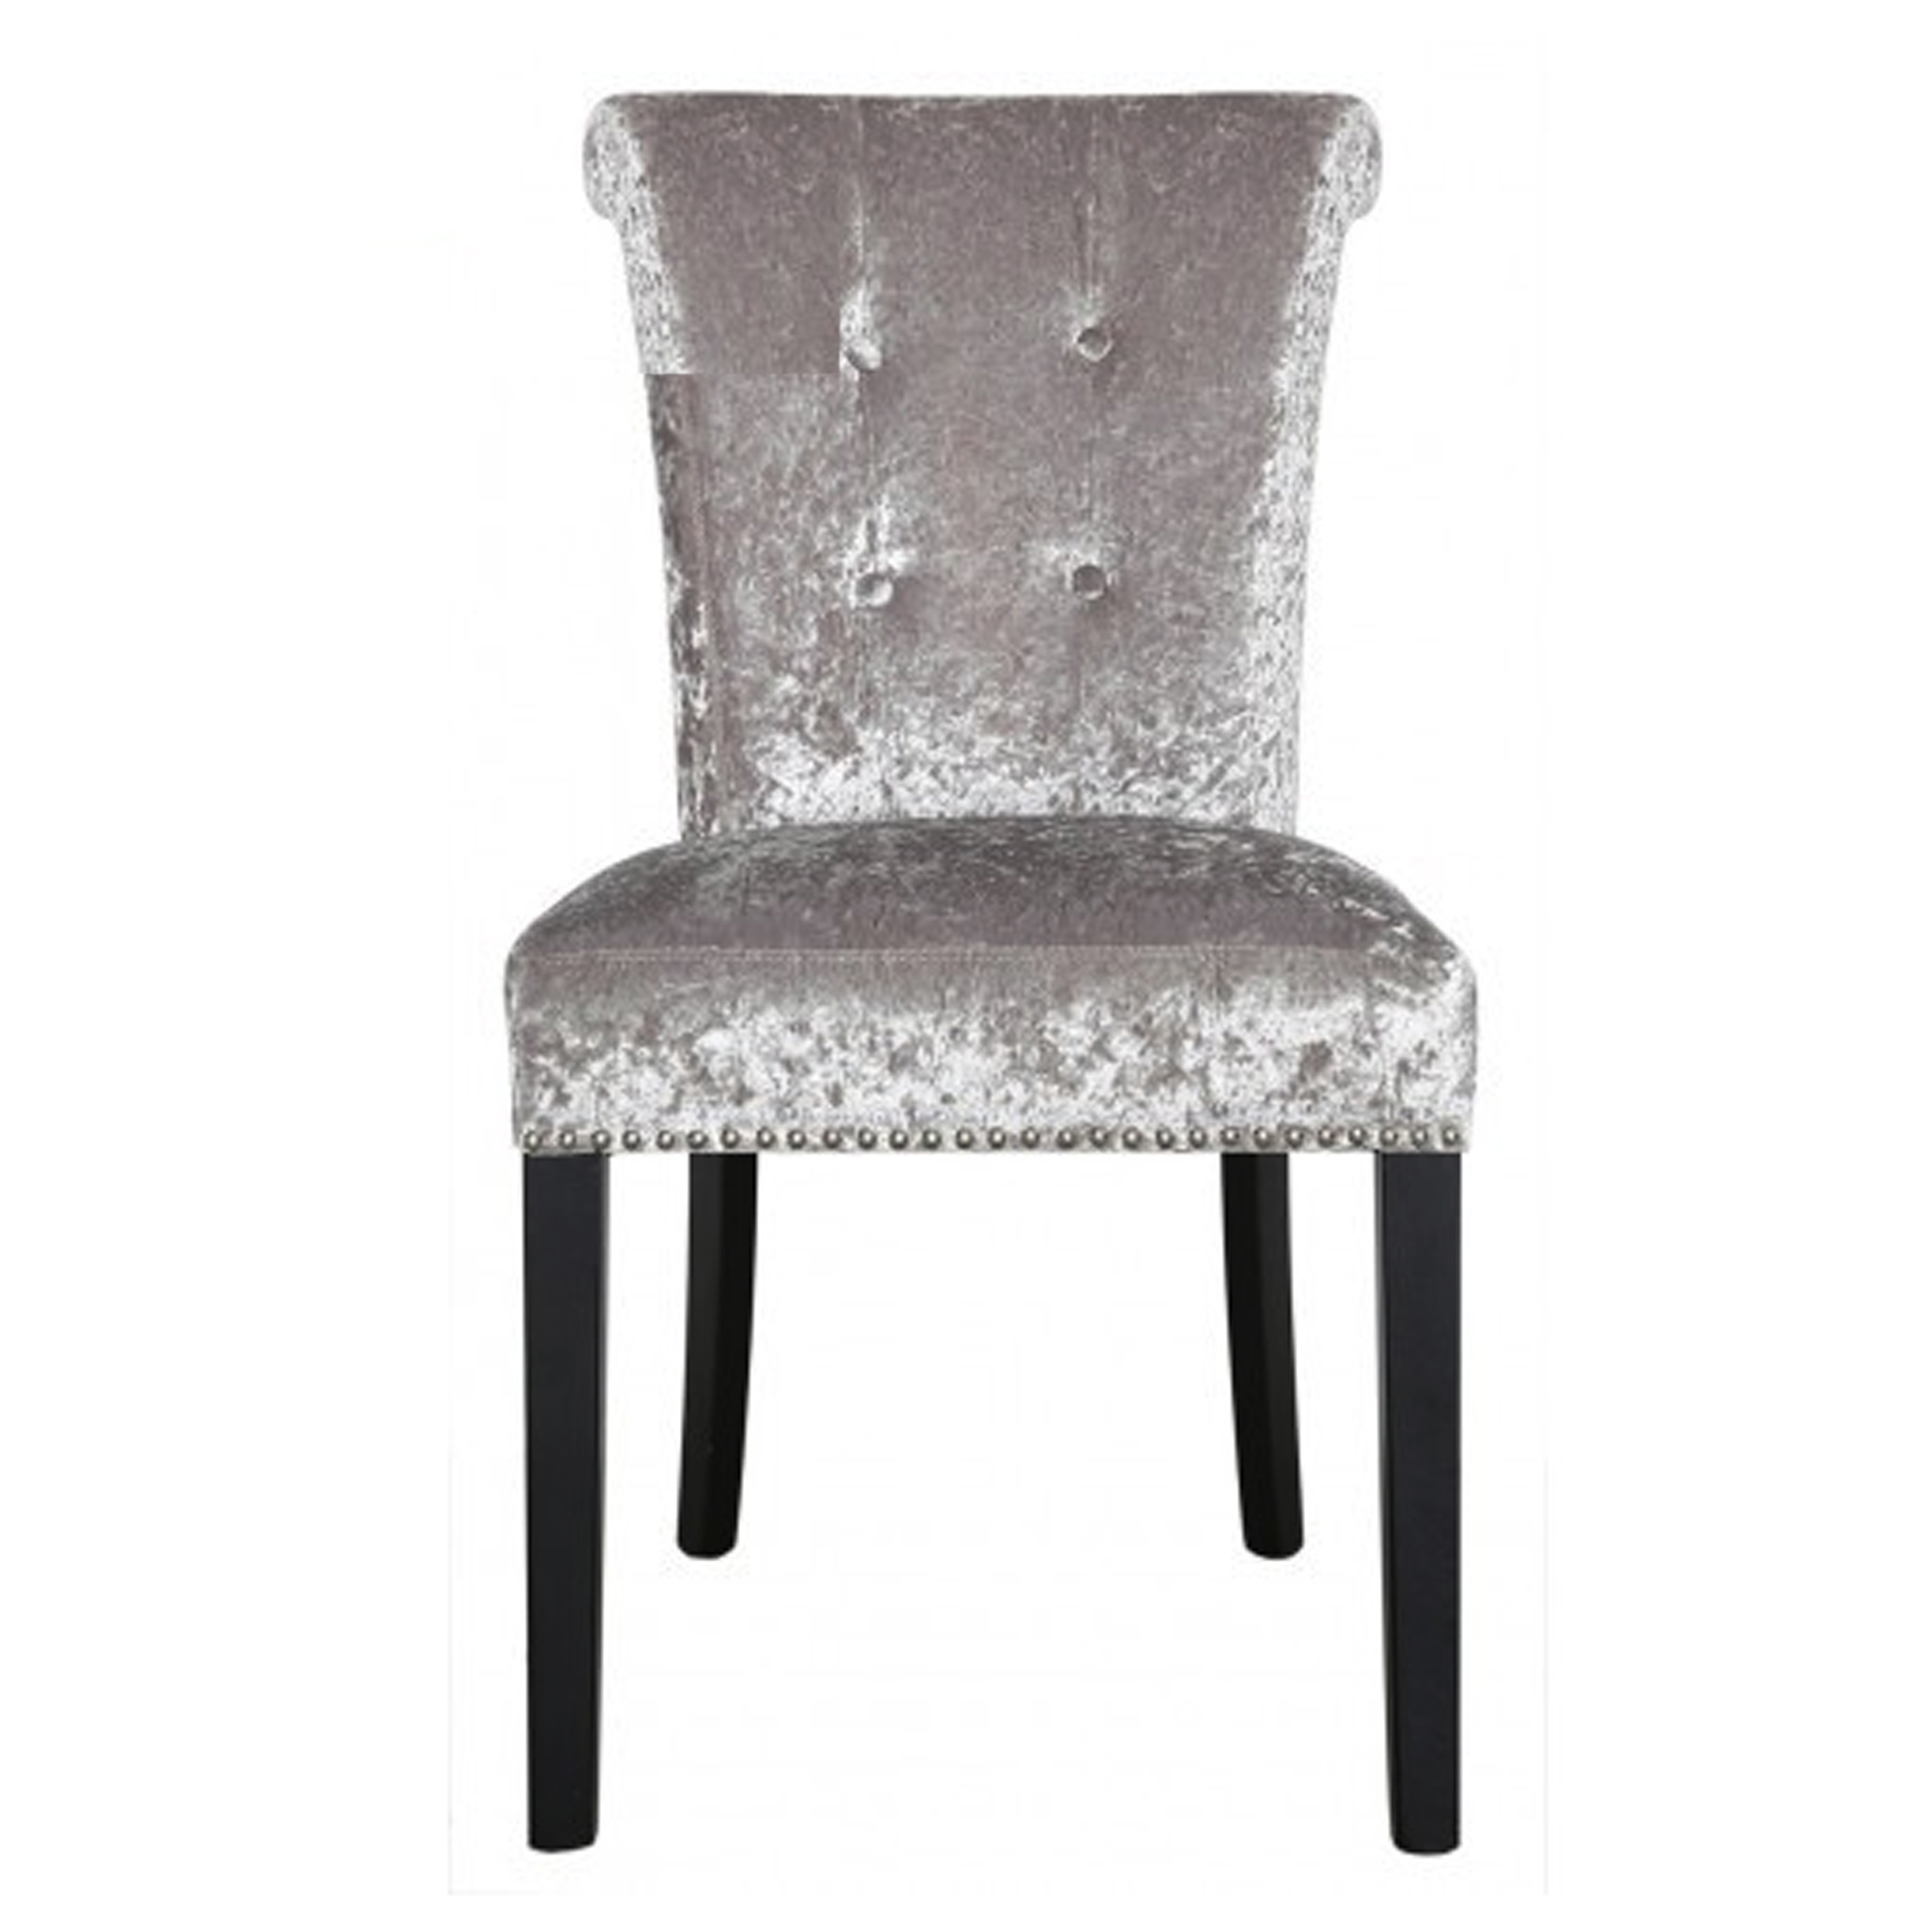 Silver Crushed Velvet Dining Chair Dining Chairs